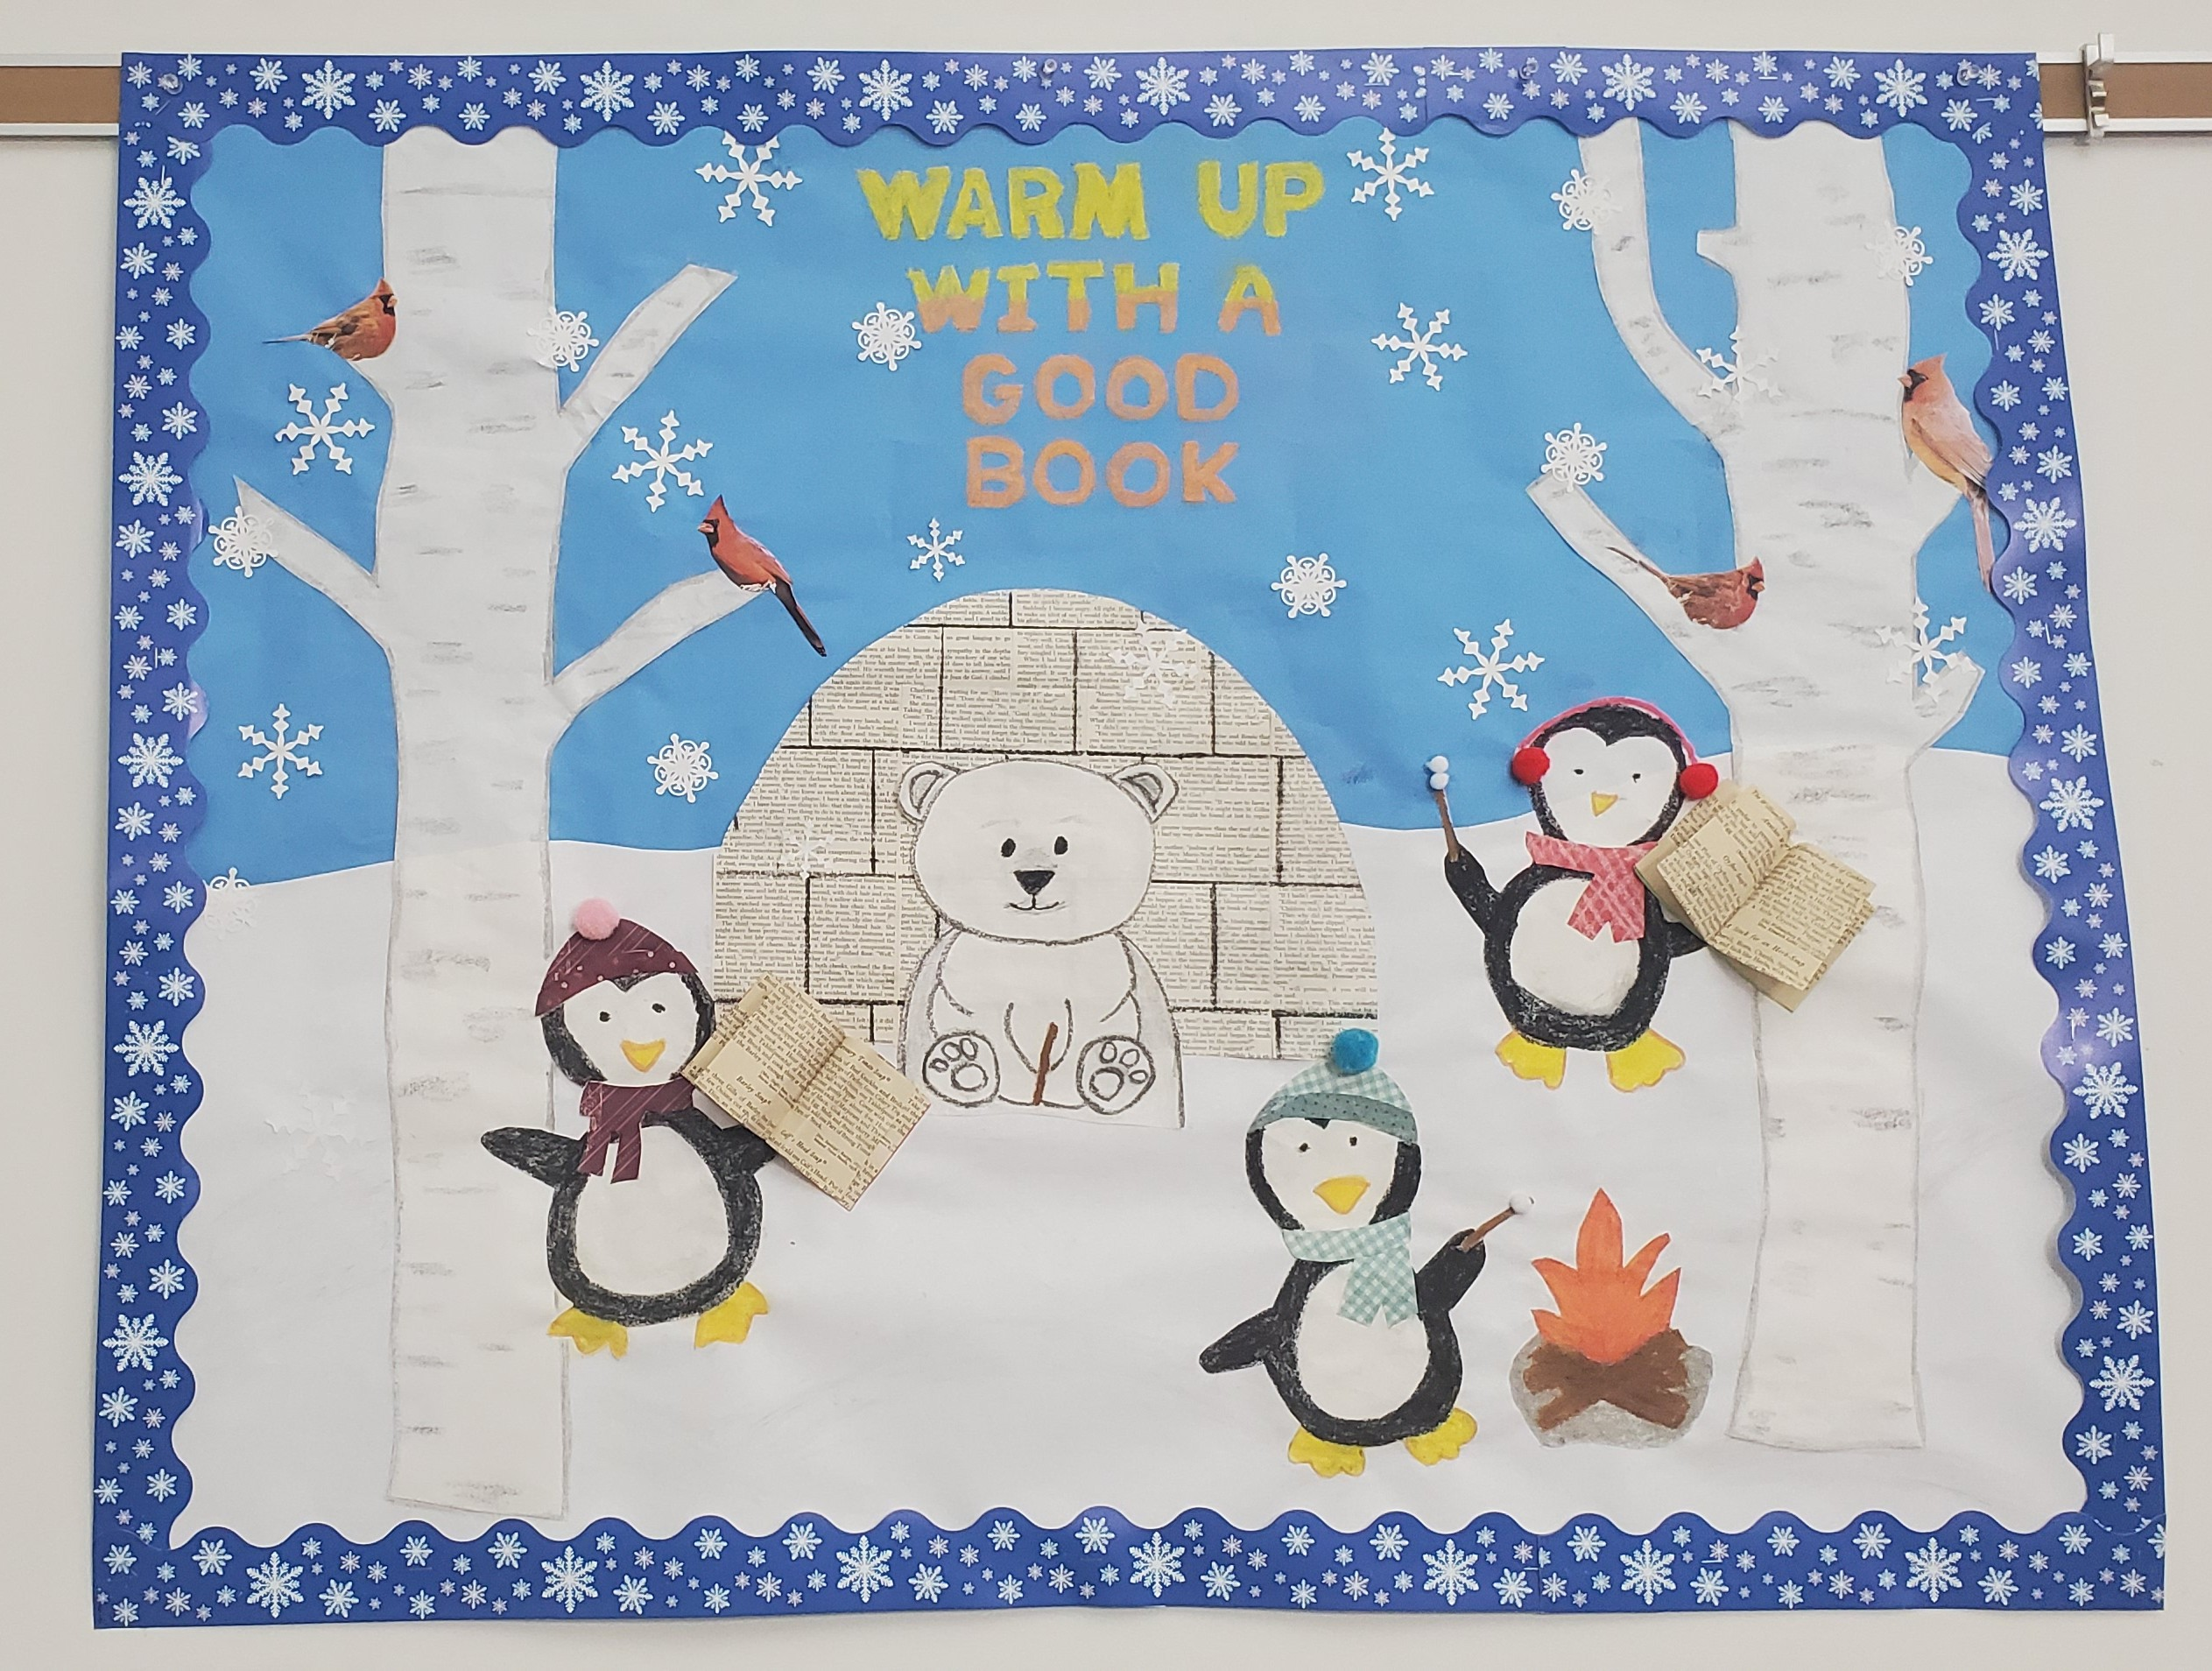 Another creative bulletin board from the talents of assistant librarian, Jeanne.